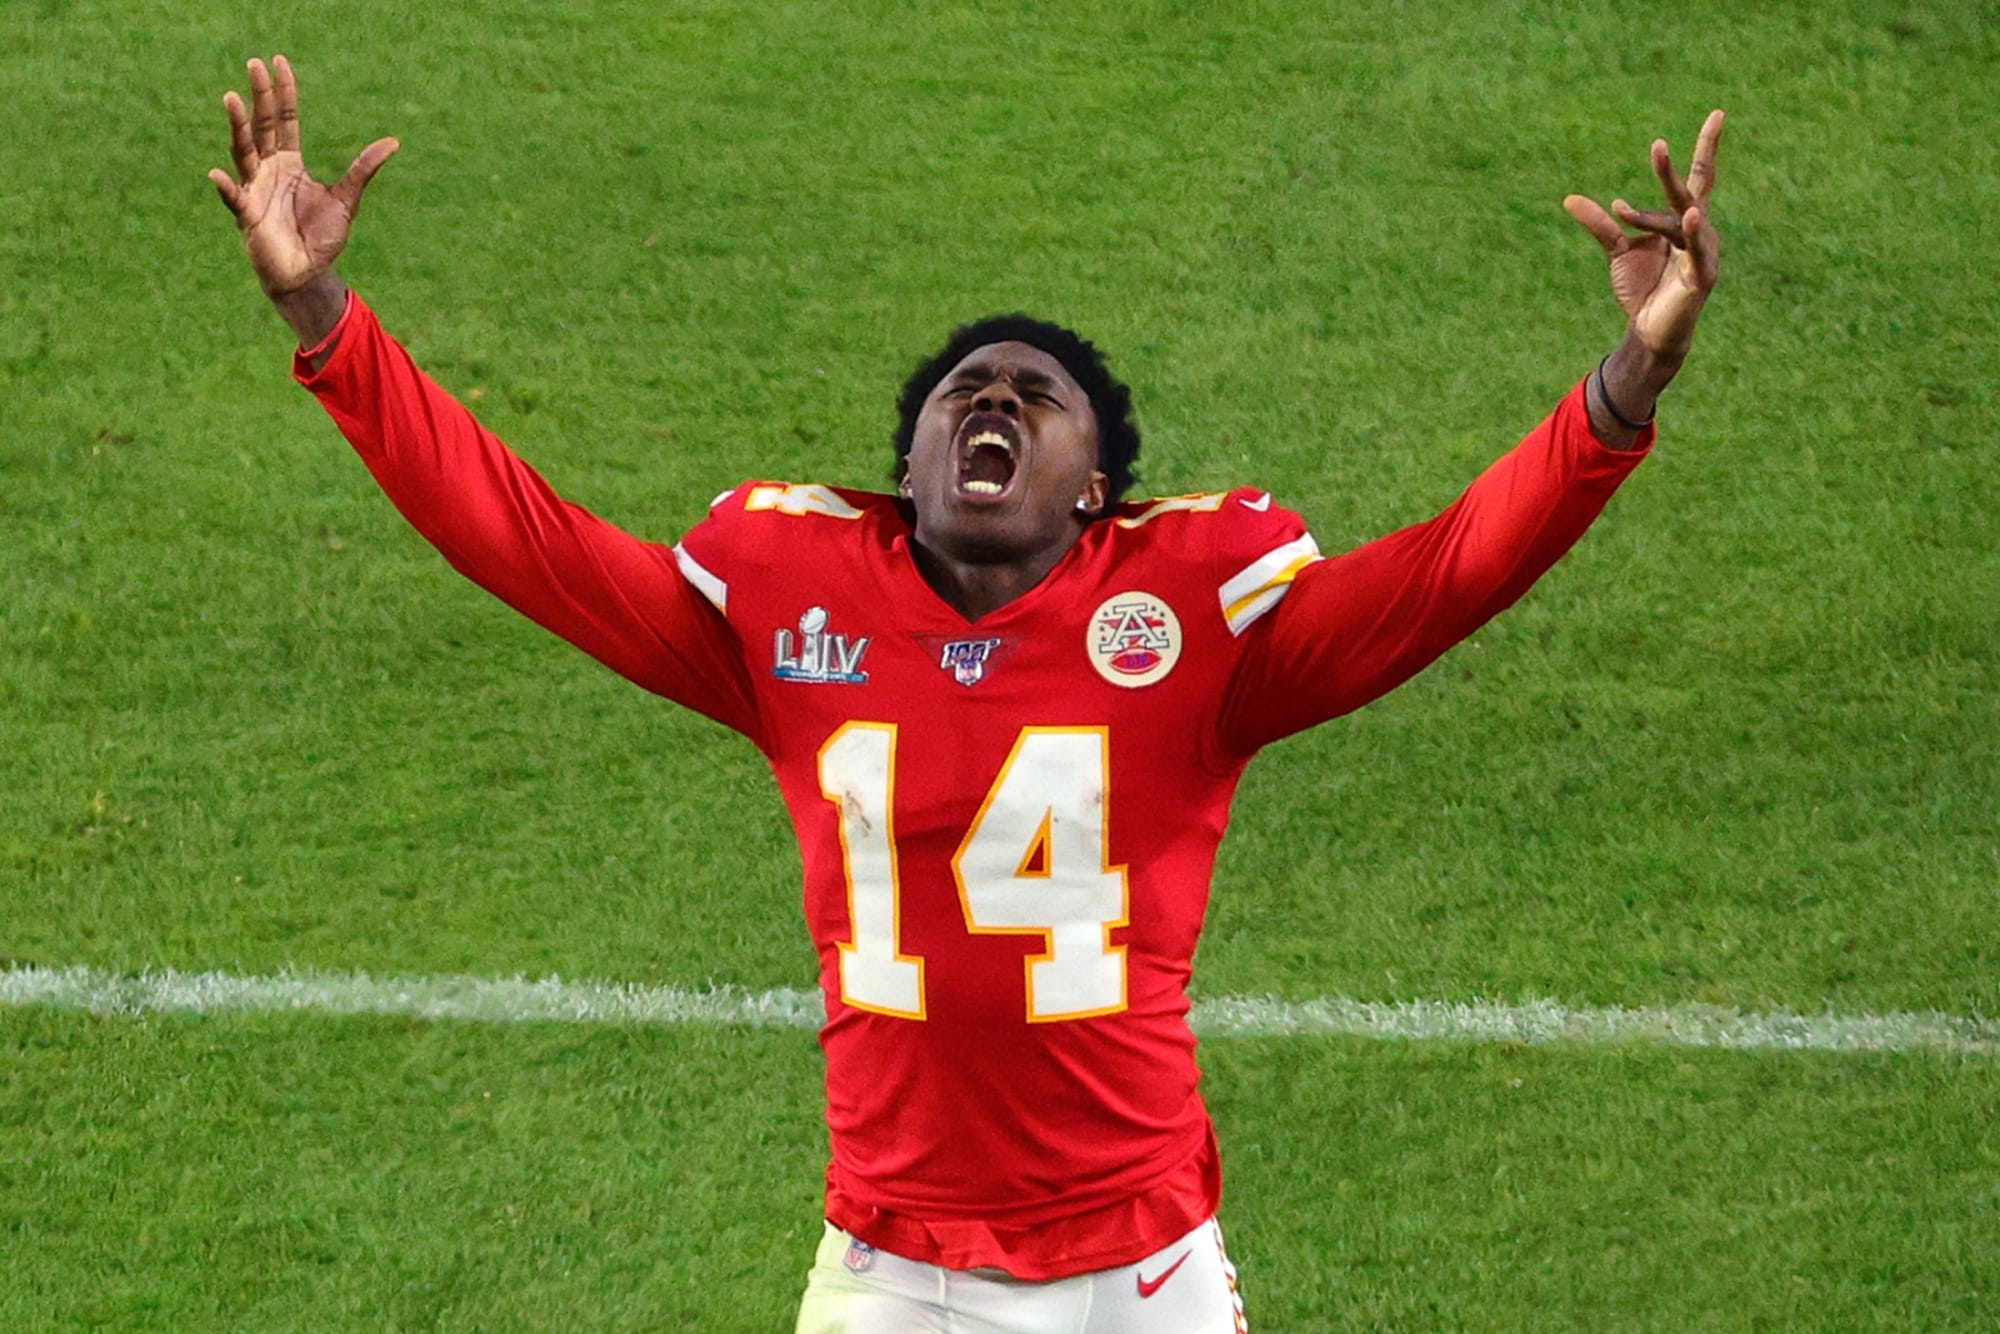 Is Sammy Watkins enough to deter Baltimore Ravens from further moves?